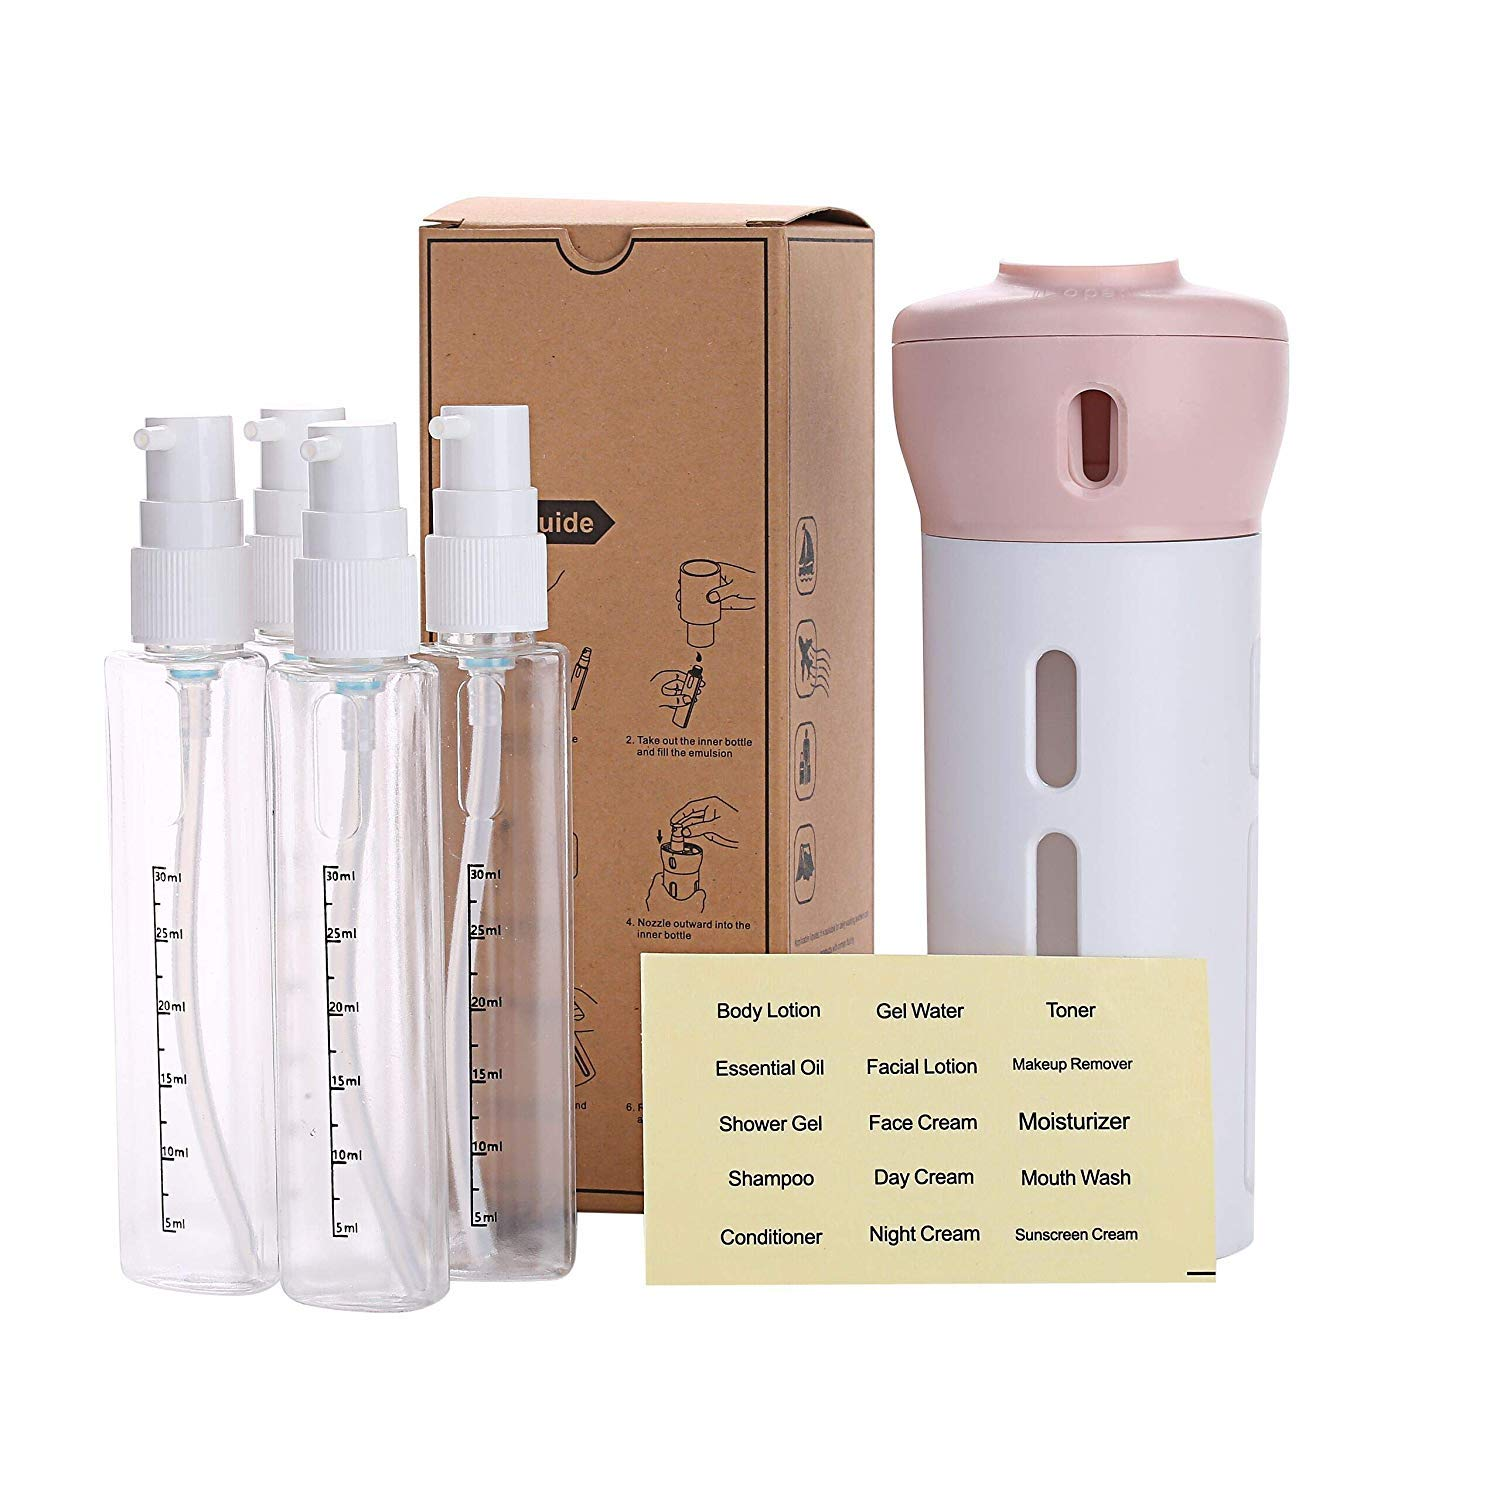 Travel Bottles Set, AIRERA 4-in-1 Organized Leak Proof Travel Size Toiletries, Refillable Travel Liquid/Lotion Container Kit - TSA Approved (Pink)